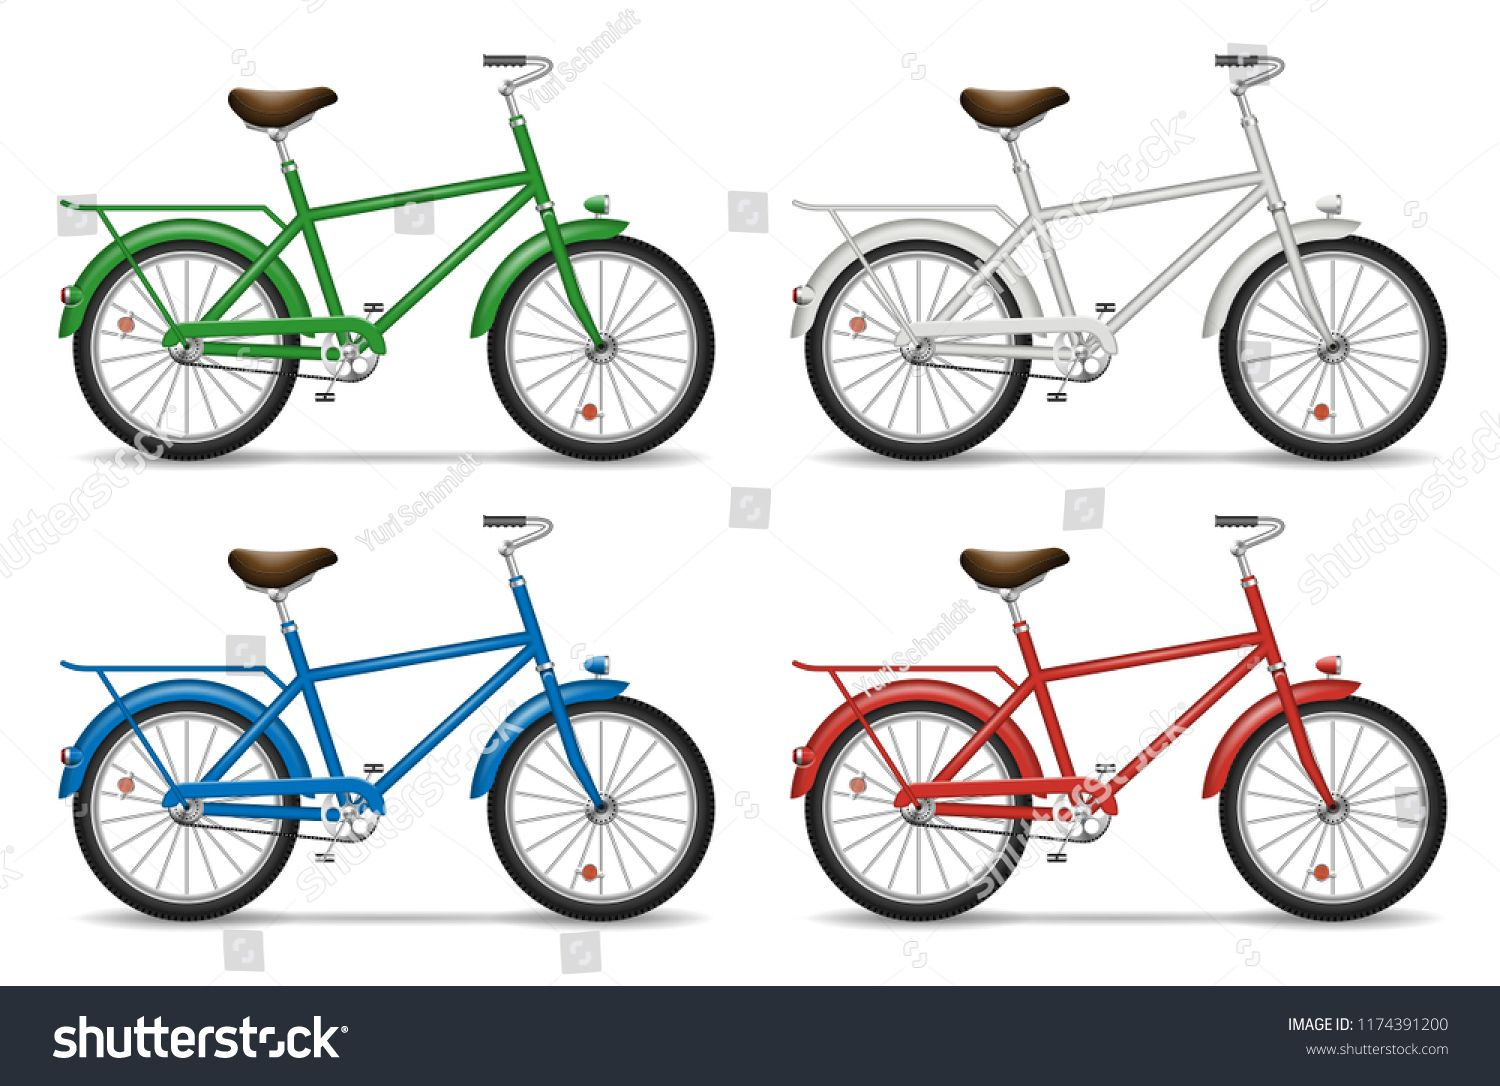 Download Realistic Bicycle Side View Vector Illustration Isolated Multicolored Bikes On White Background Ad Sponsored View Vecto Mockup Psd Bicycle Psd Templates